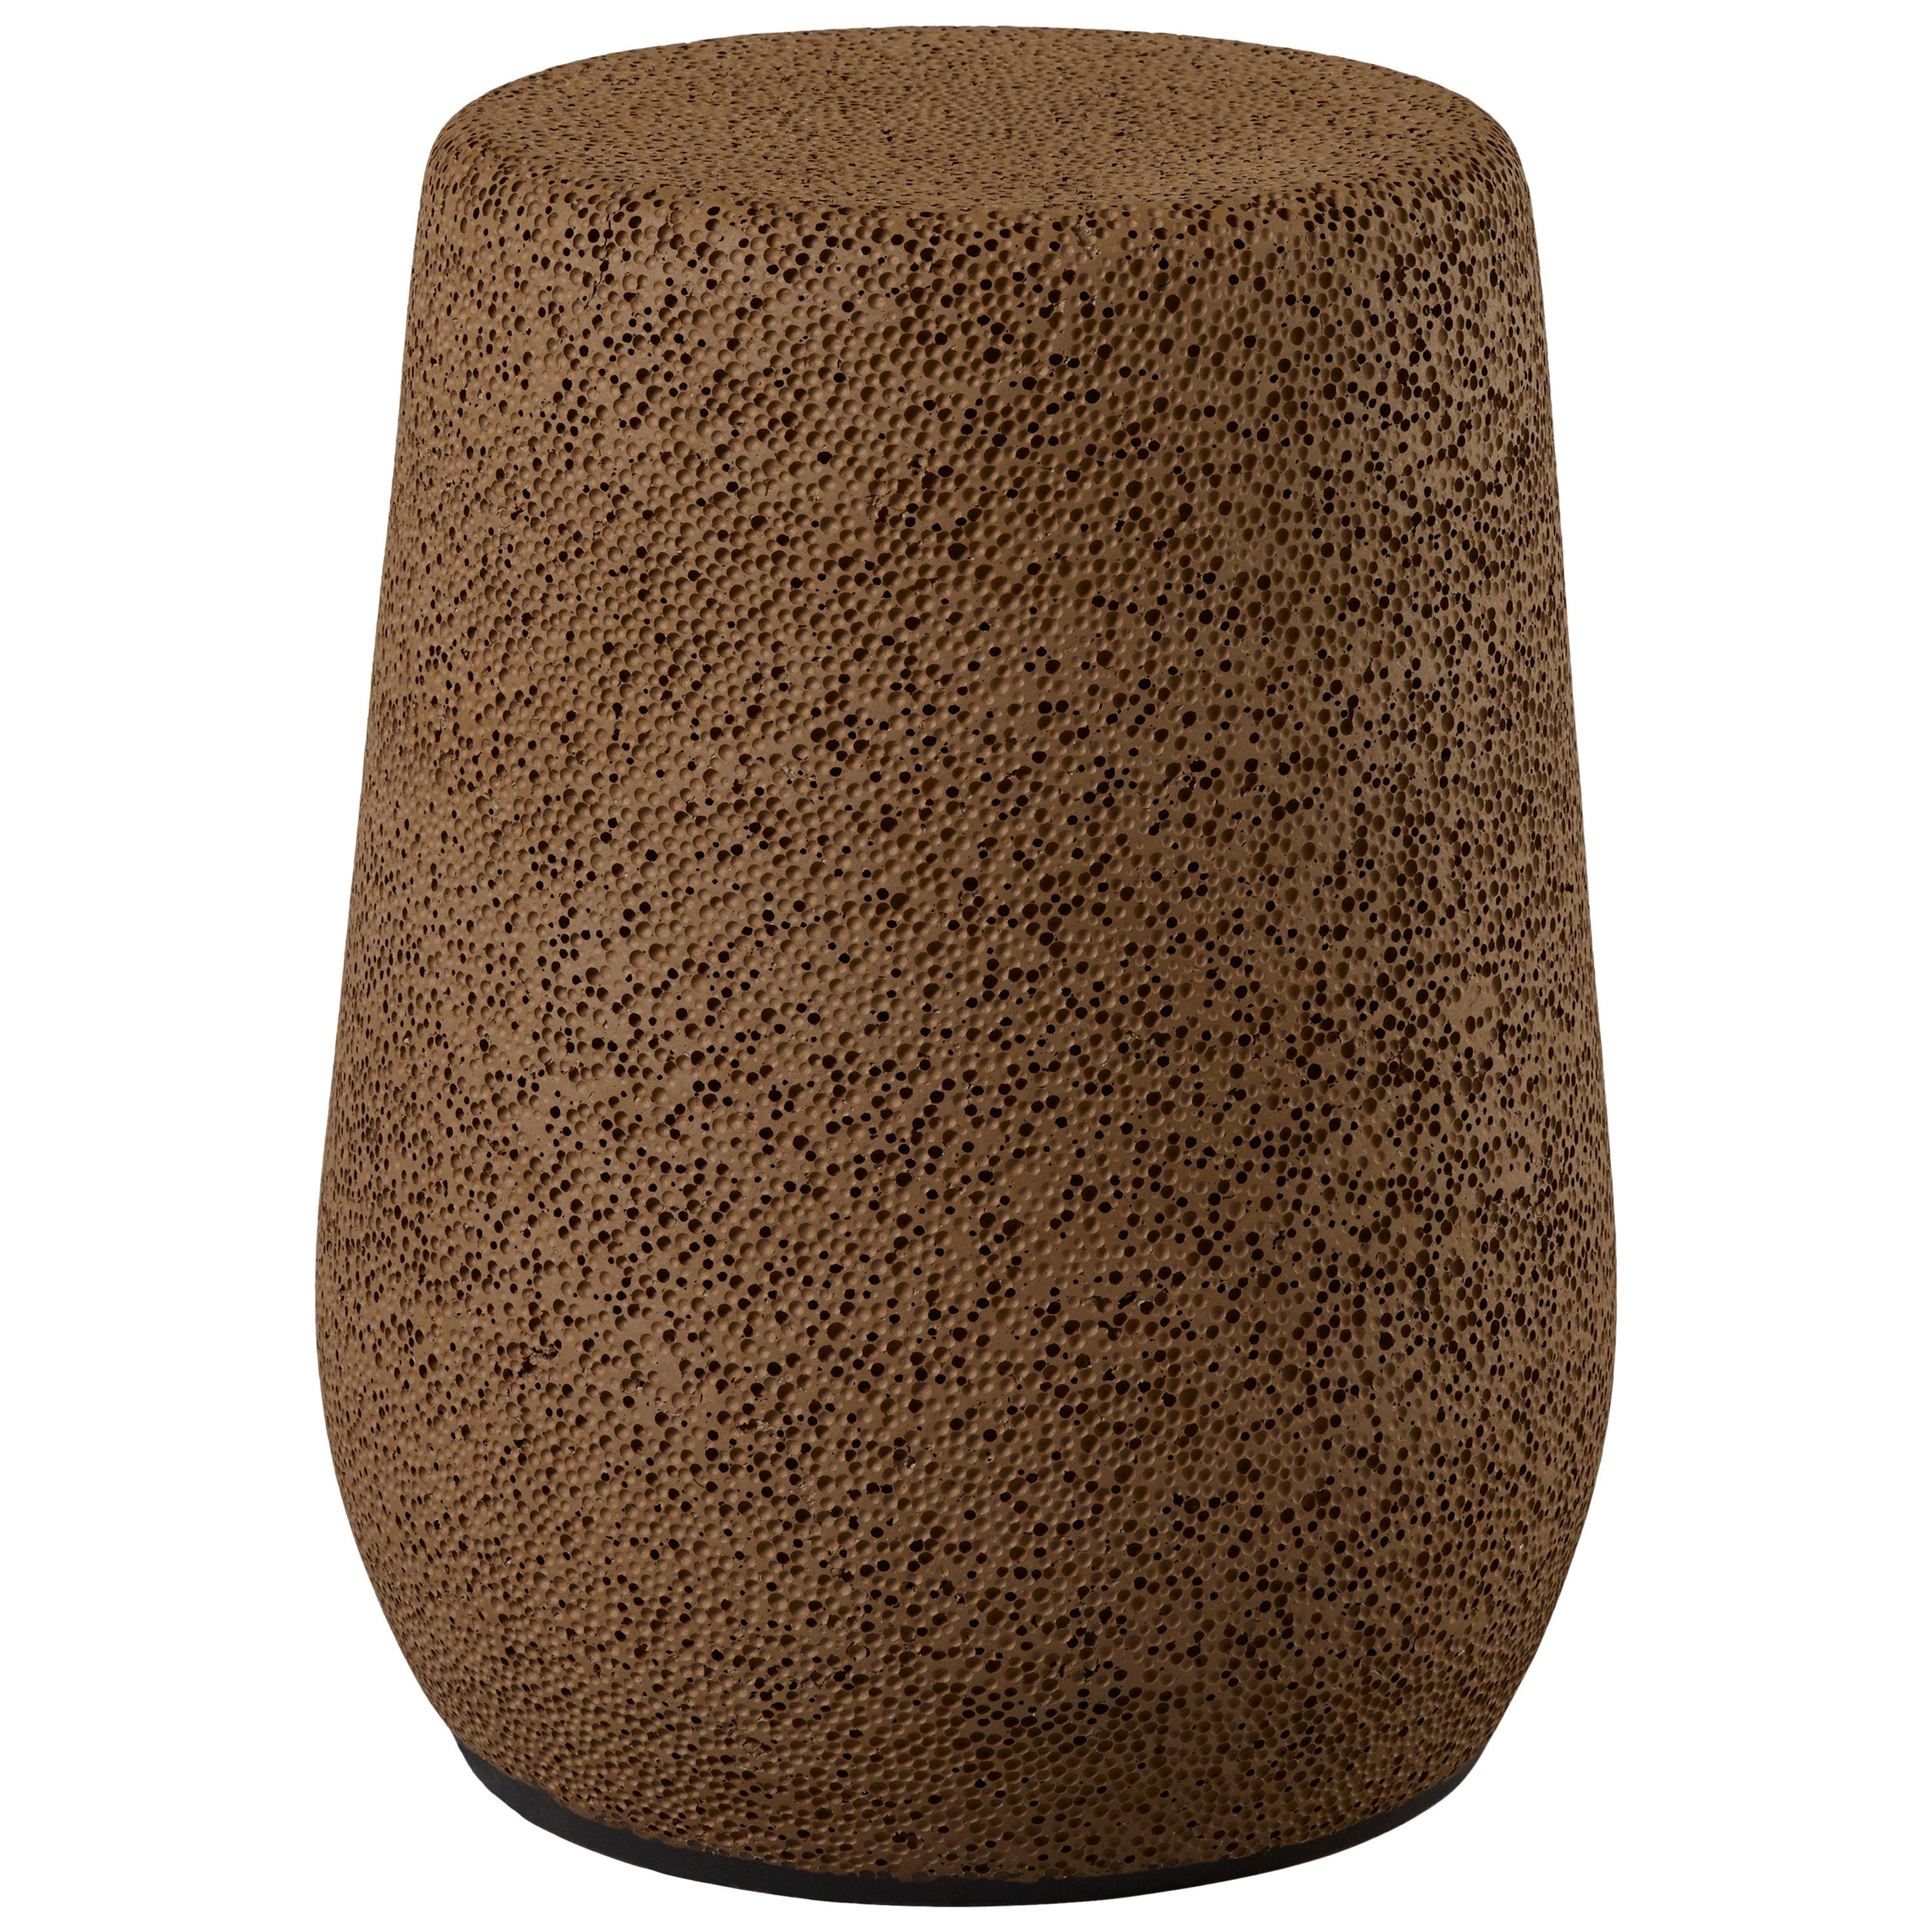 'Lightweight Porcelain' Stool and Side Table by Djim Berger - Chocolate Brown